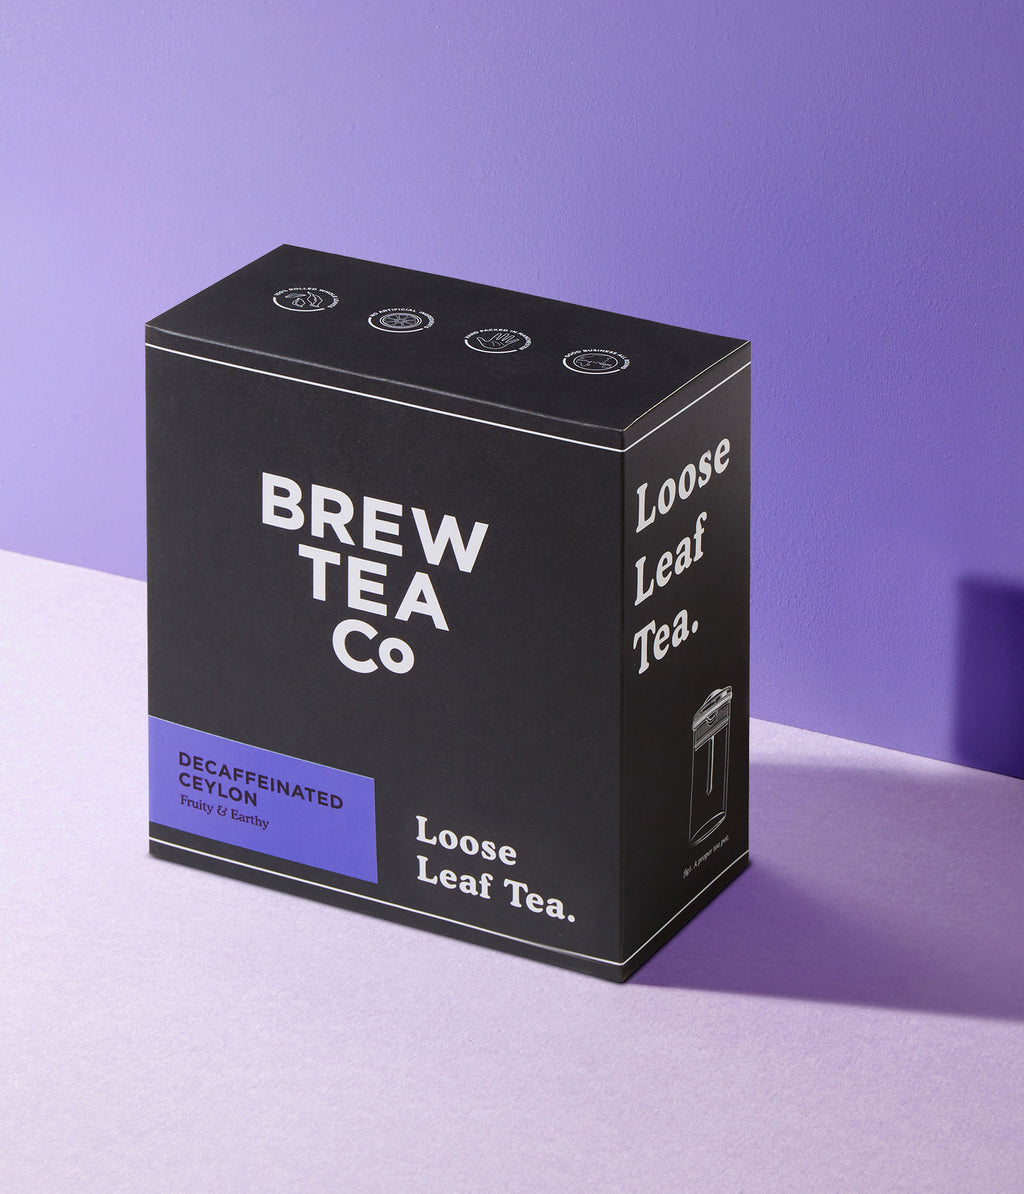 Decaffeinated Ceylon - Loose Leaf Tea